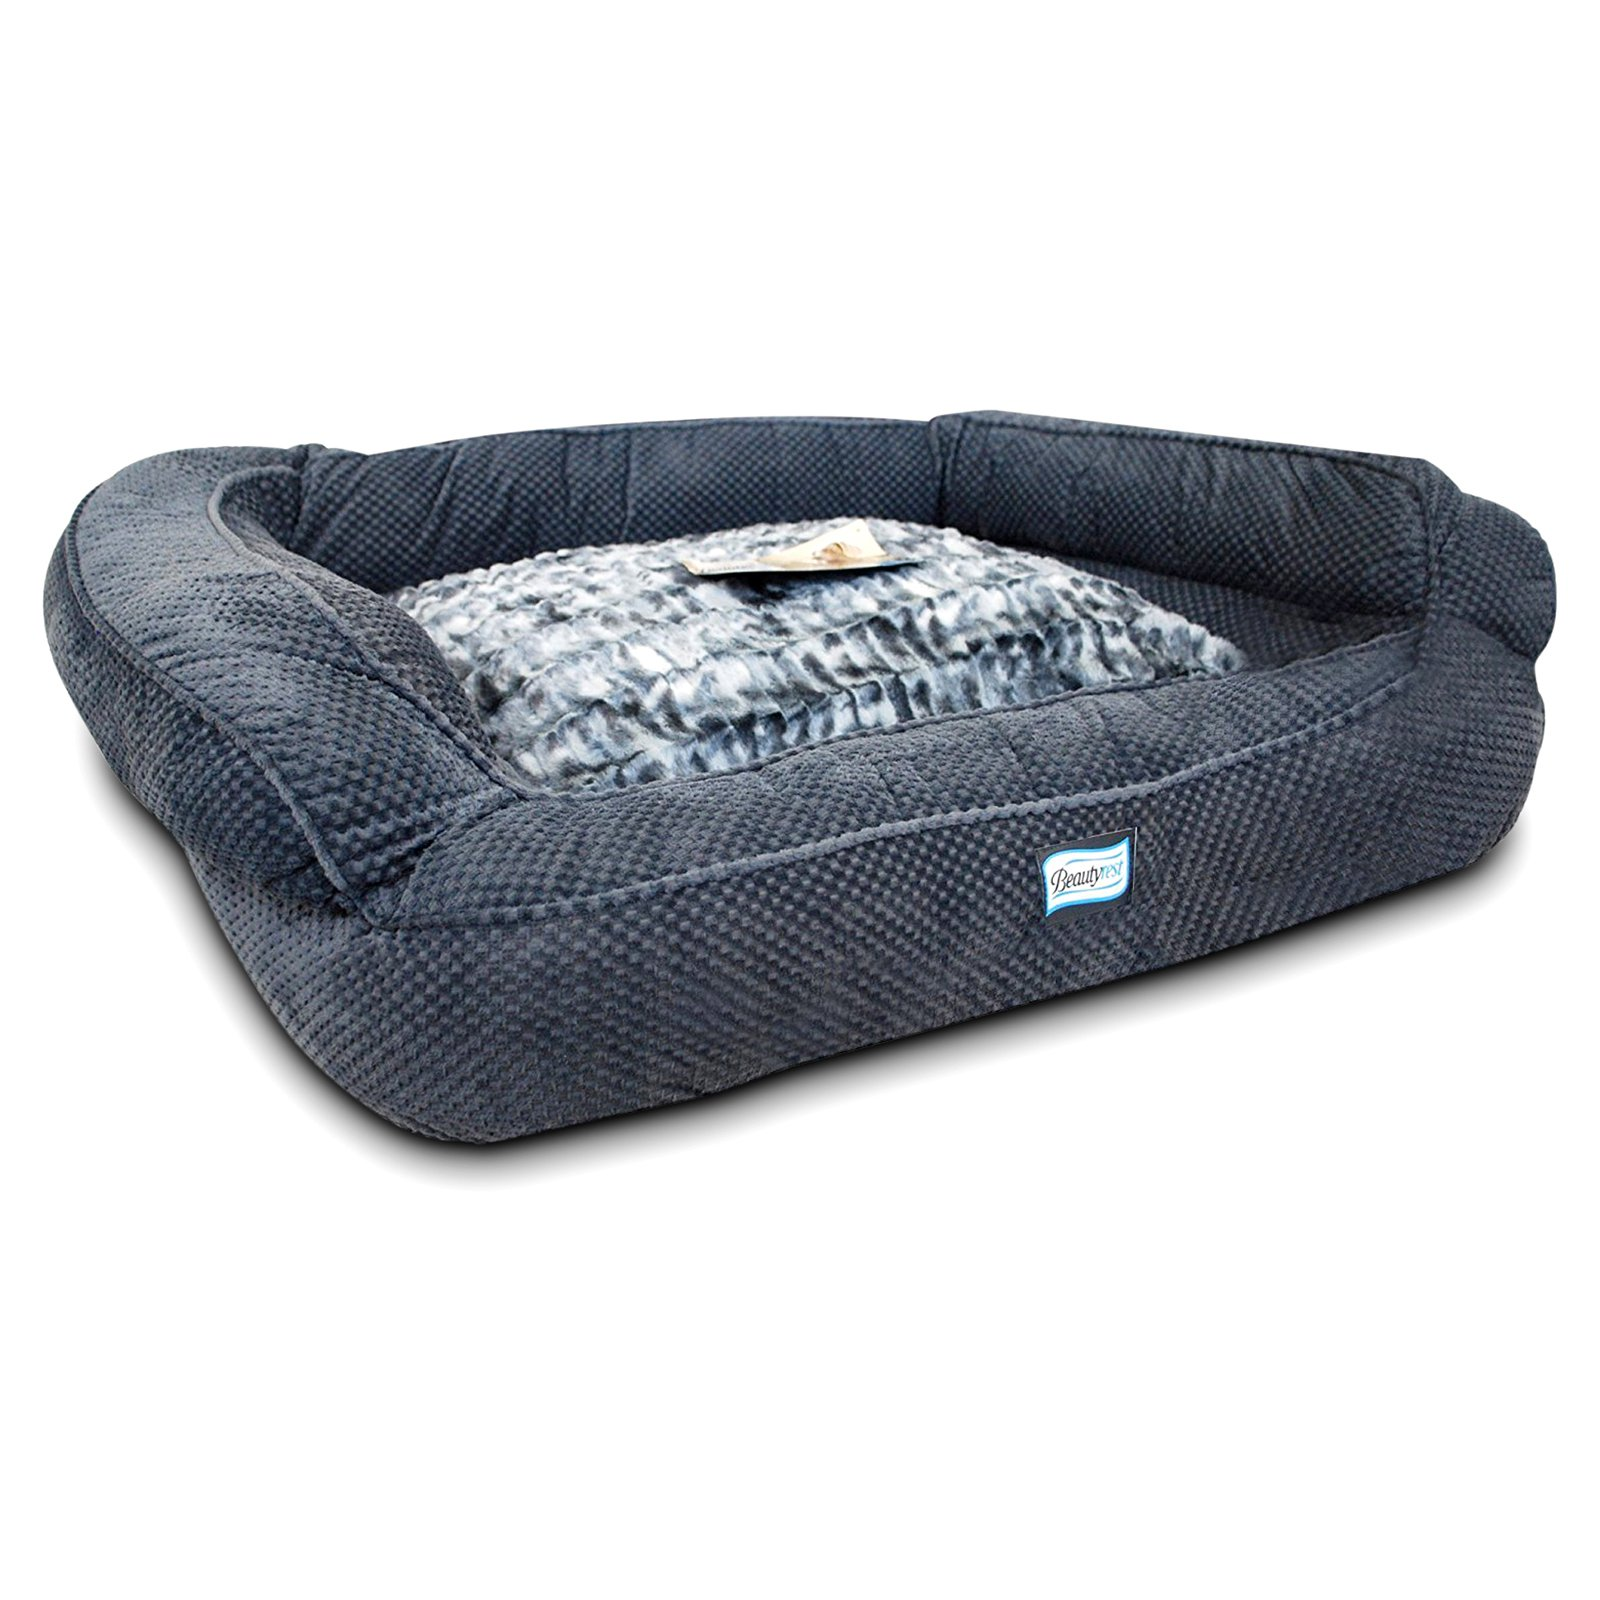 Simmons Beautyrest Pet Colossal Rest Extra Large Orthopedic Dog Bed